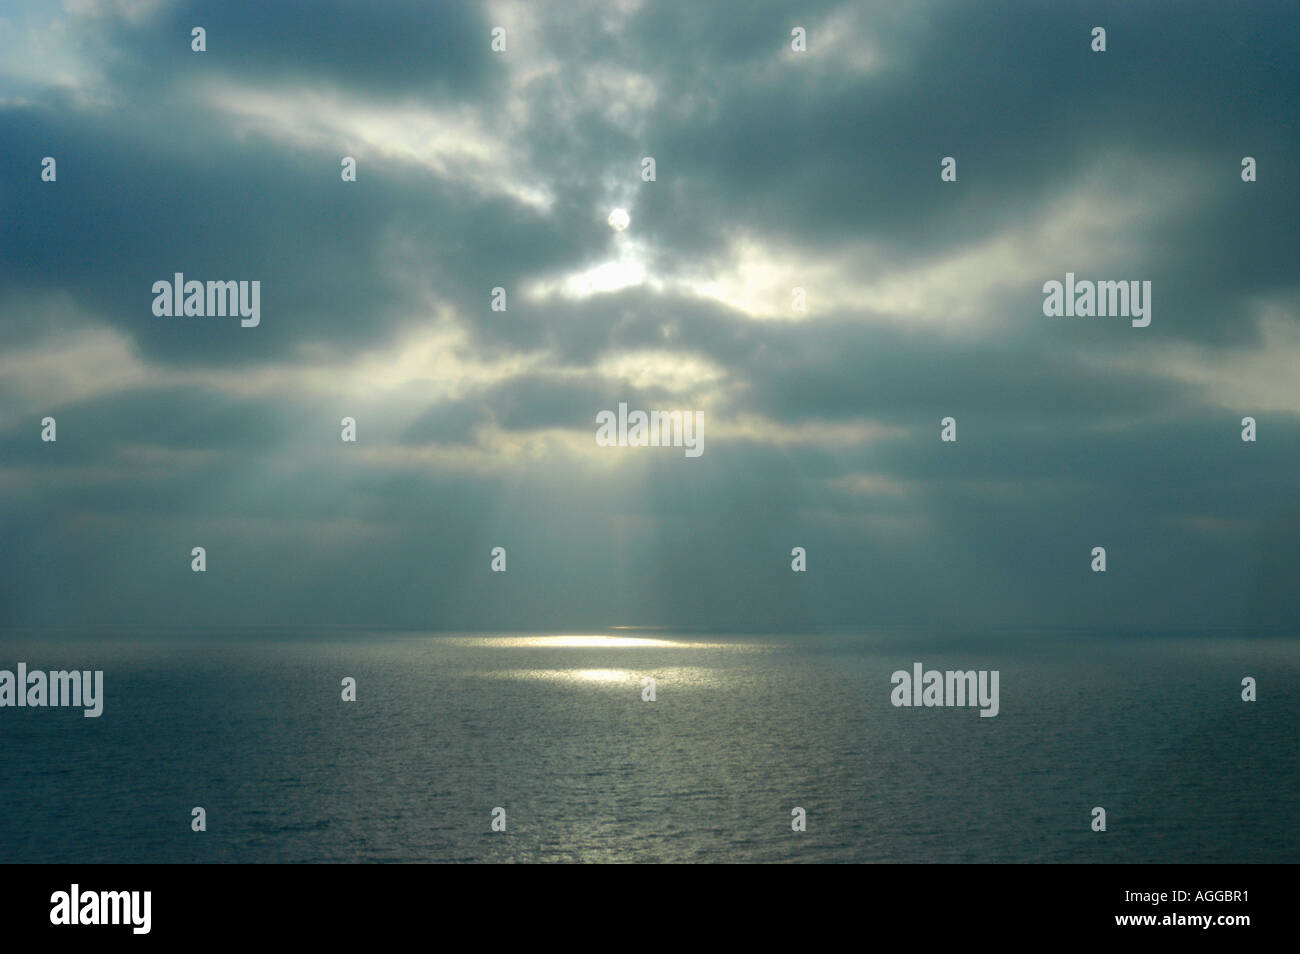 sunrays through clouds at sea, Sweden - Stock Image